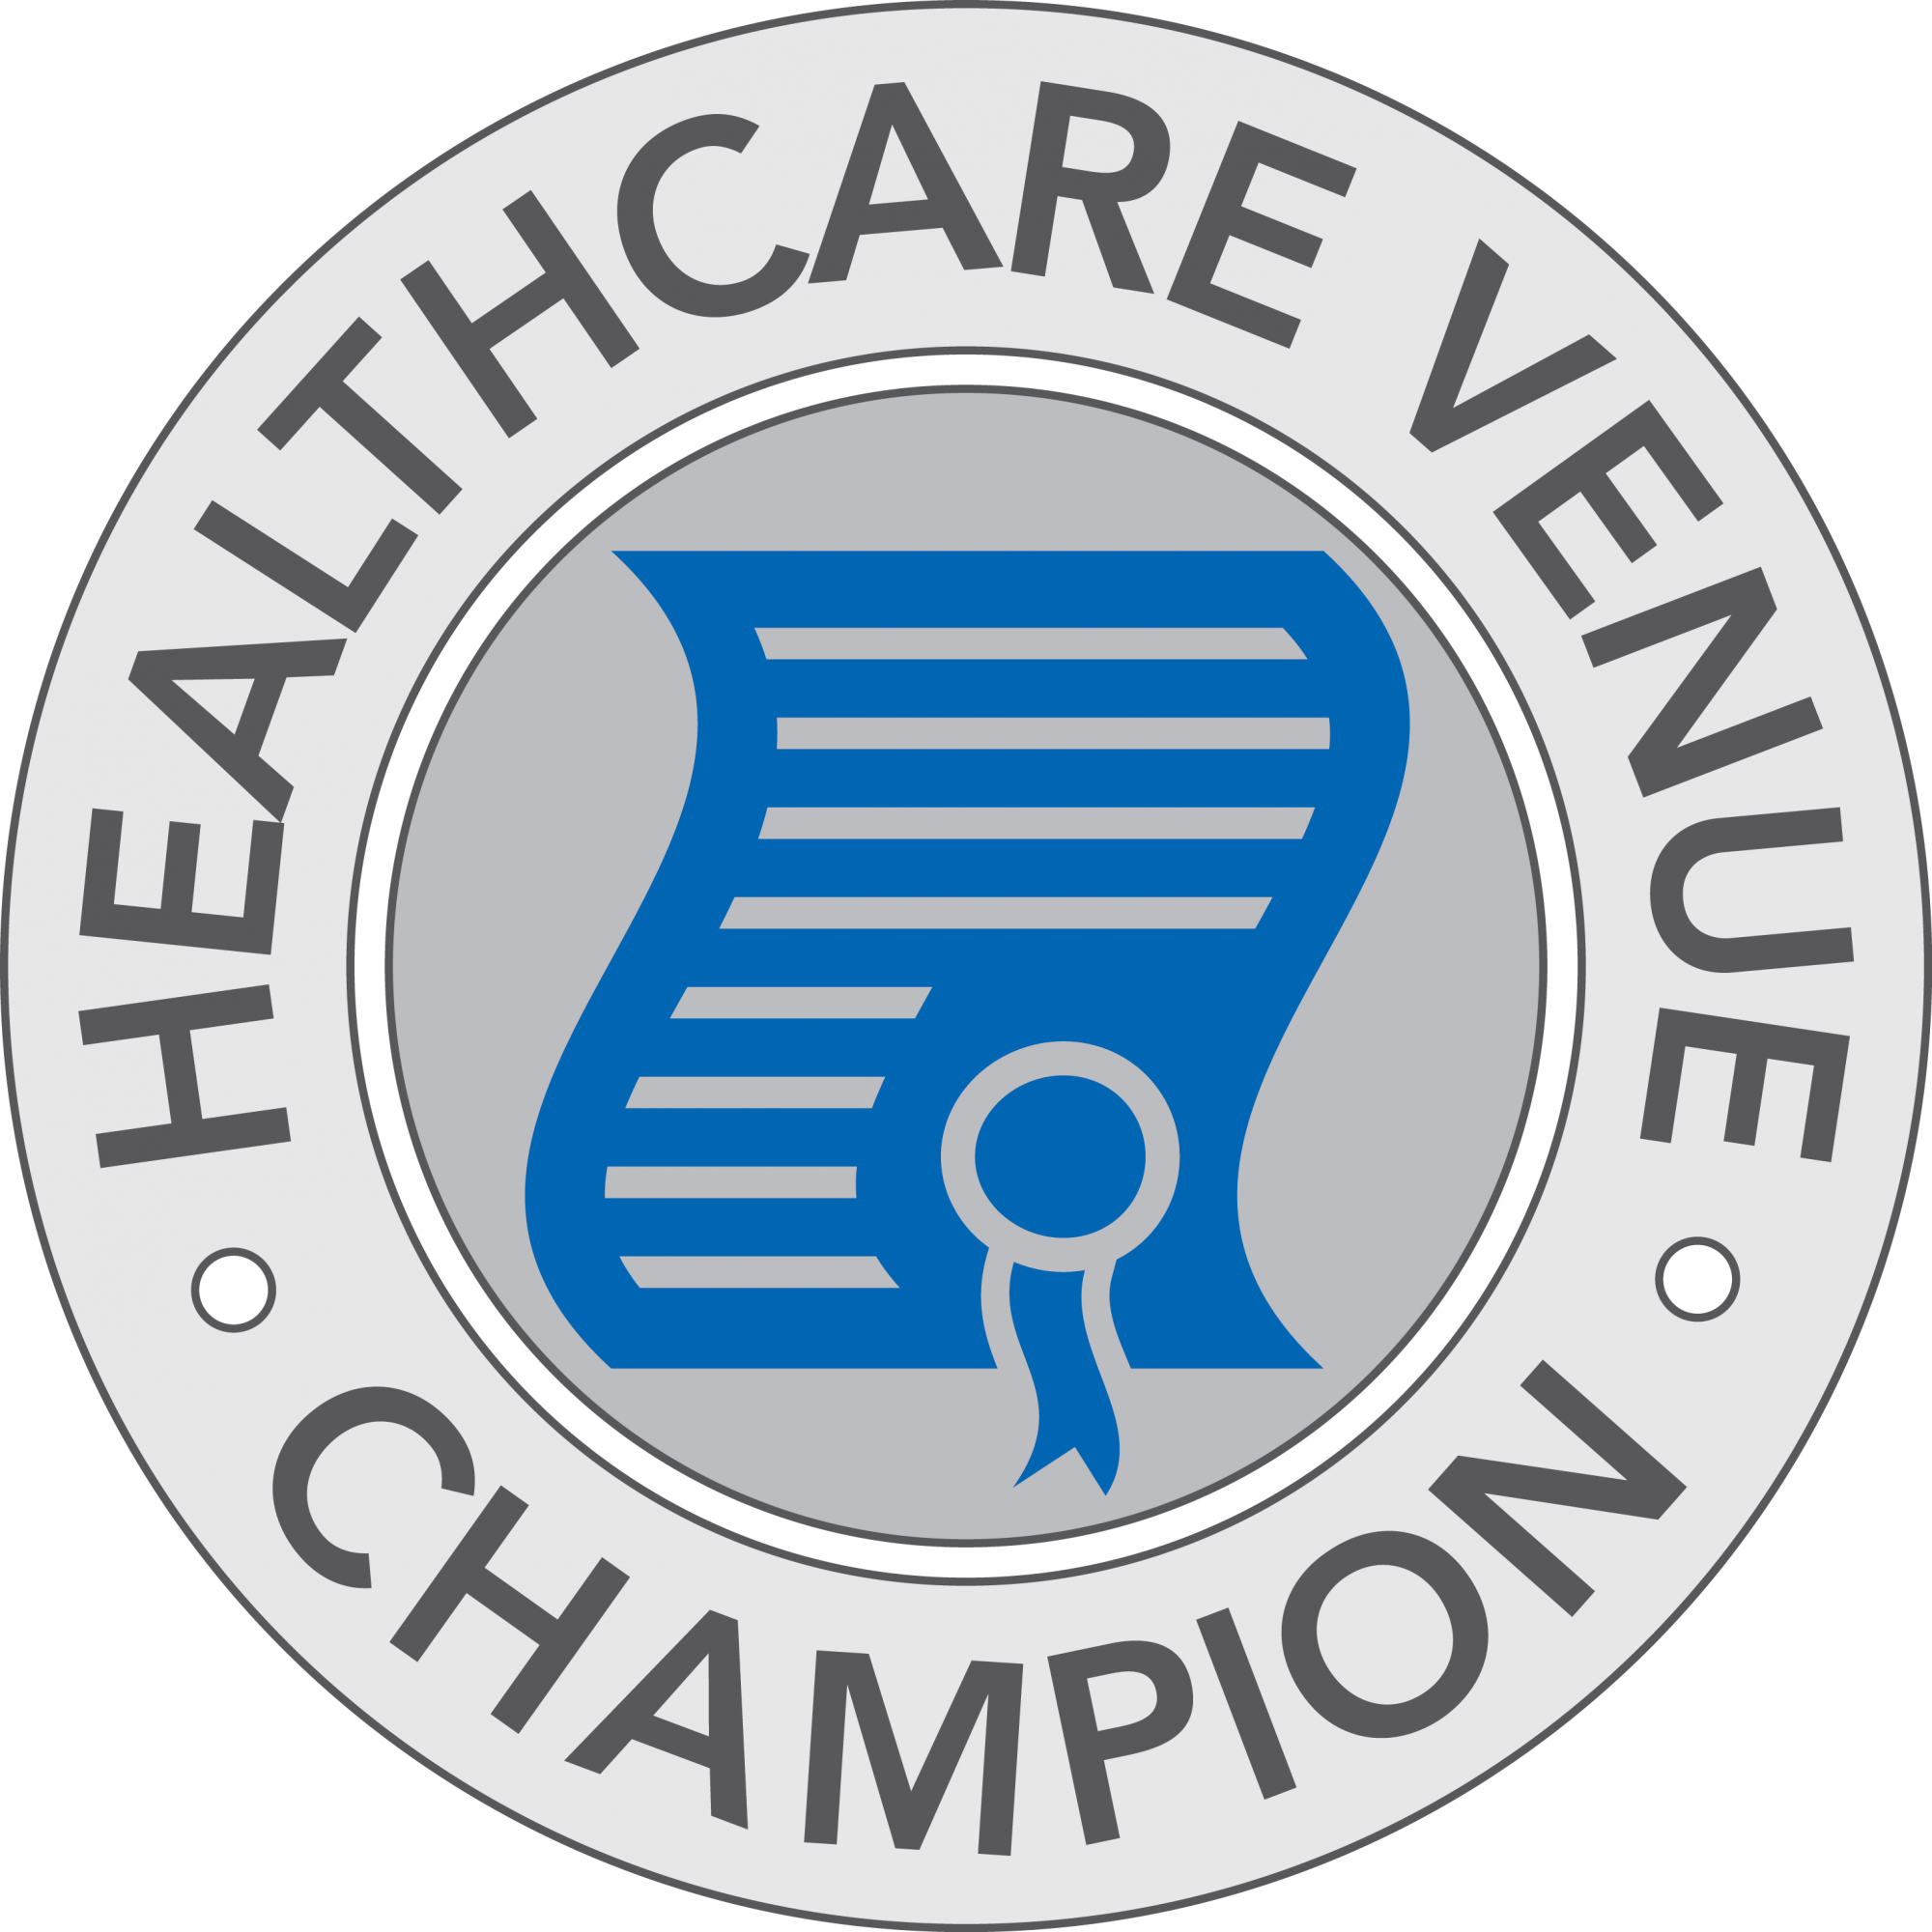 venue healthcare champion stamp png